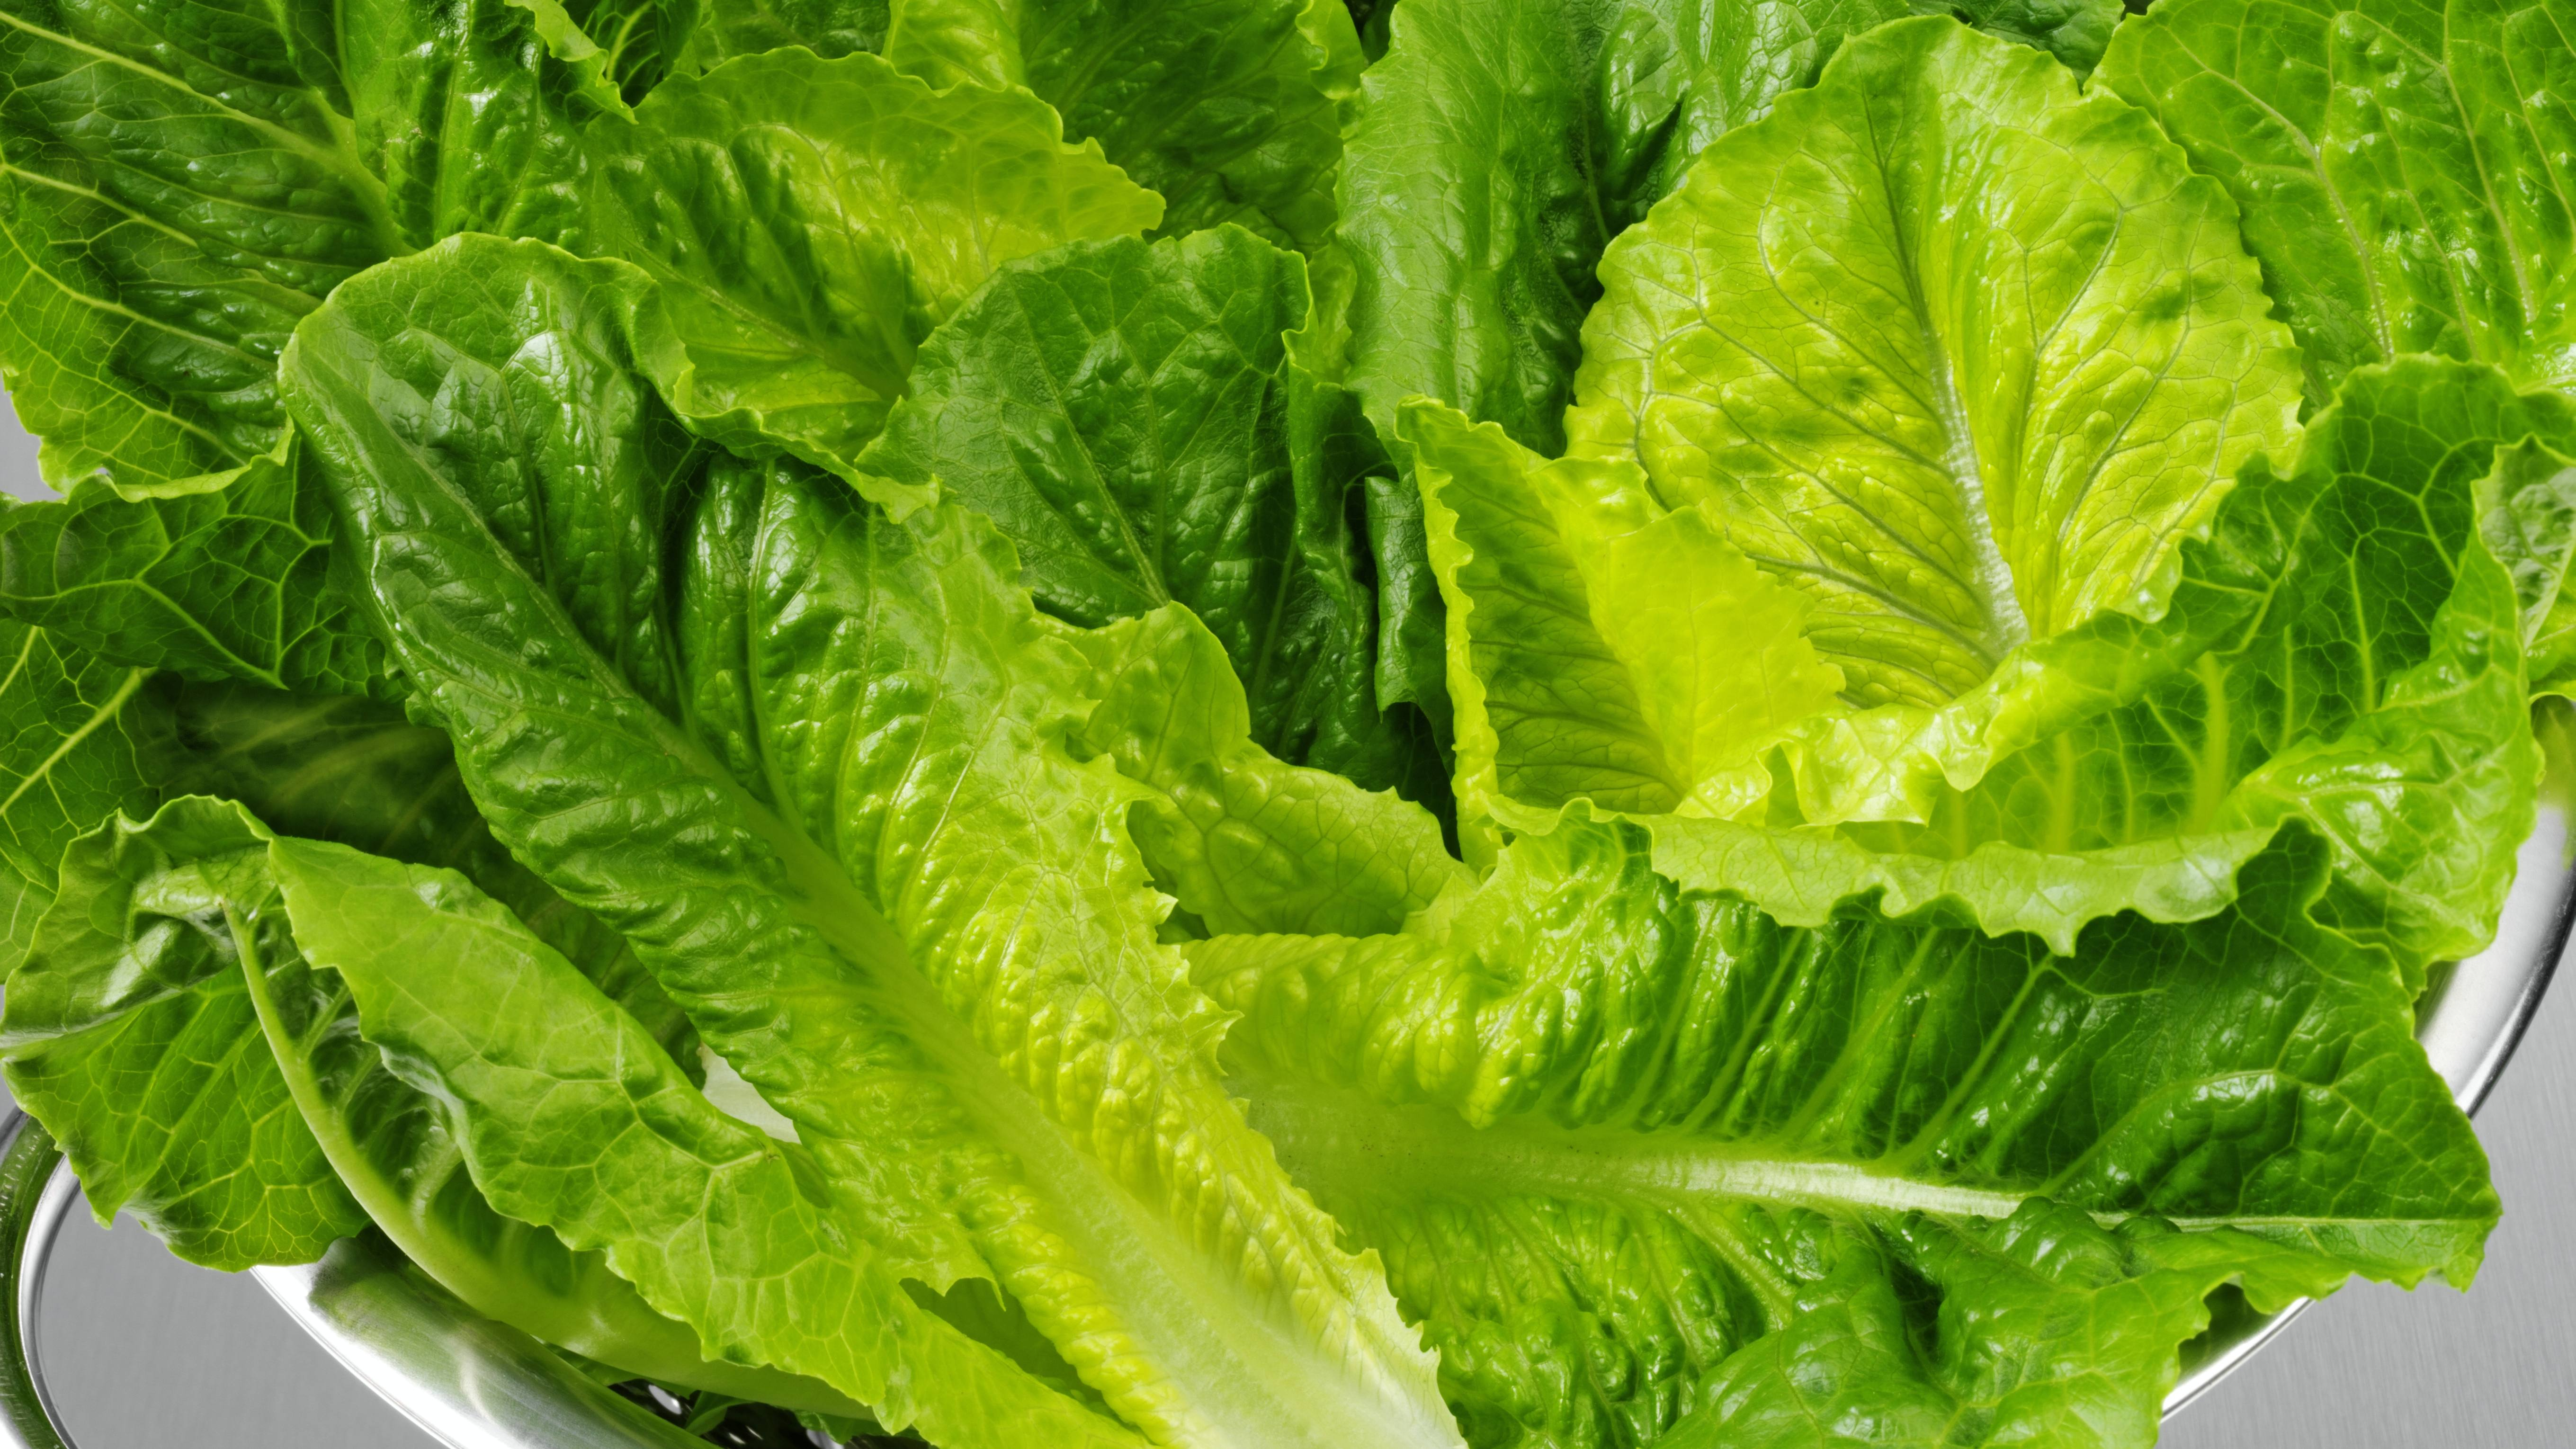 a collander bowl filled with fresh romaine lettuces leaves